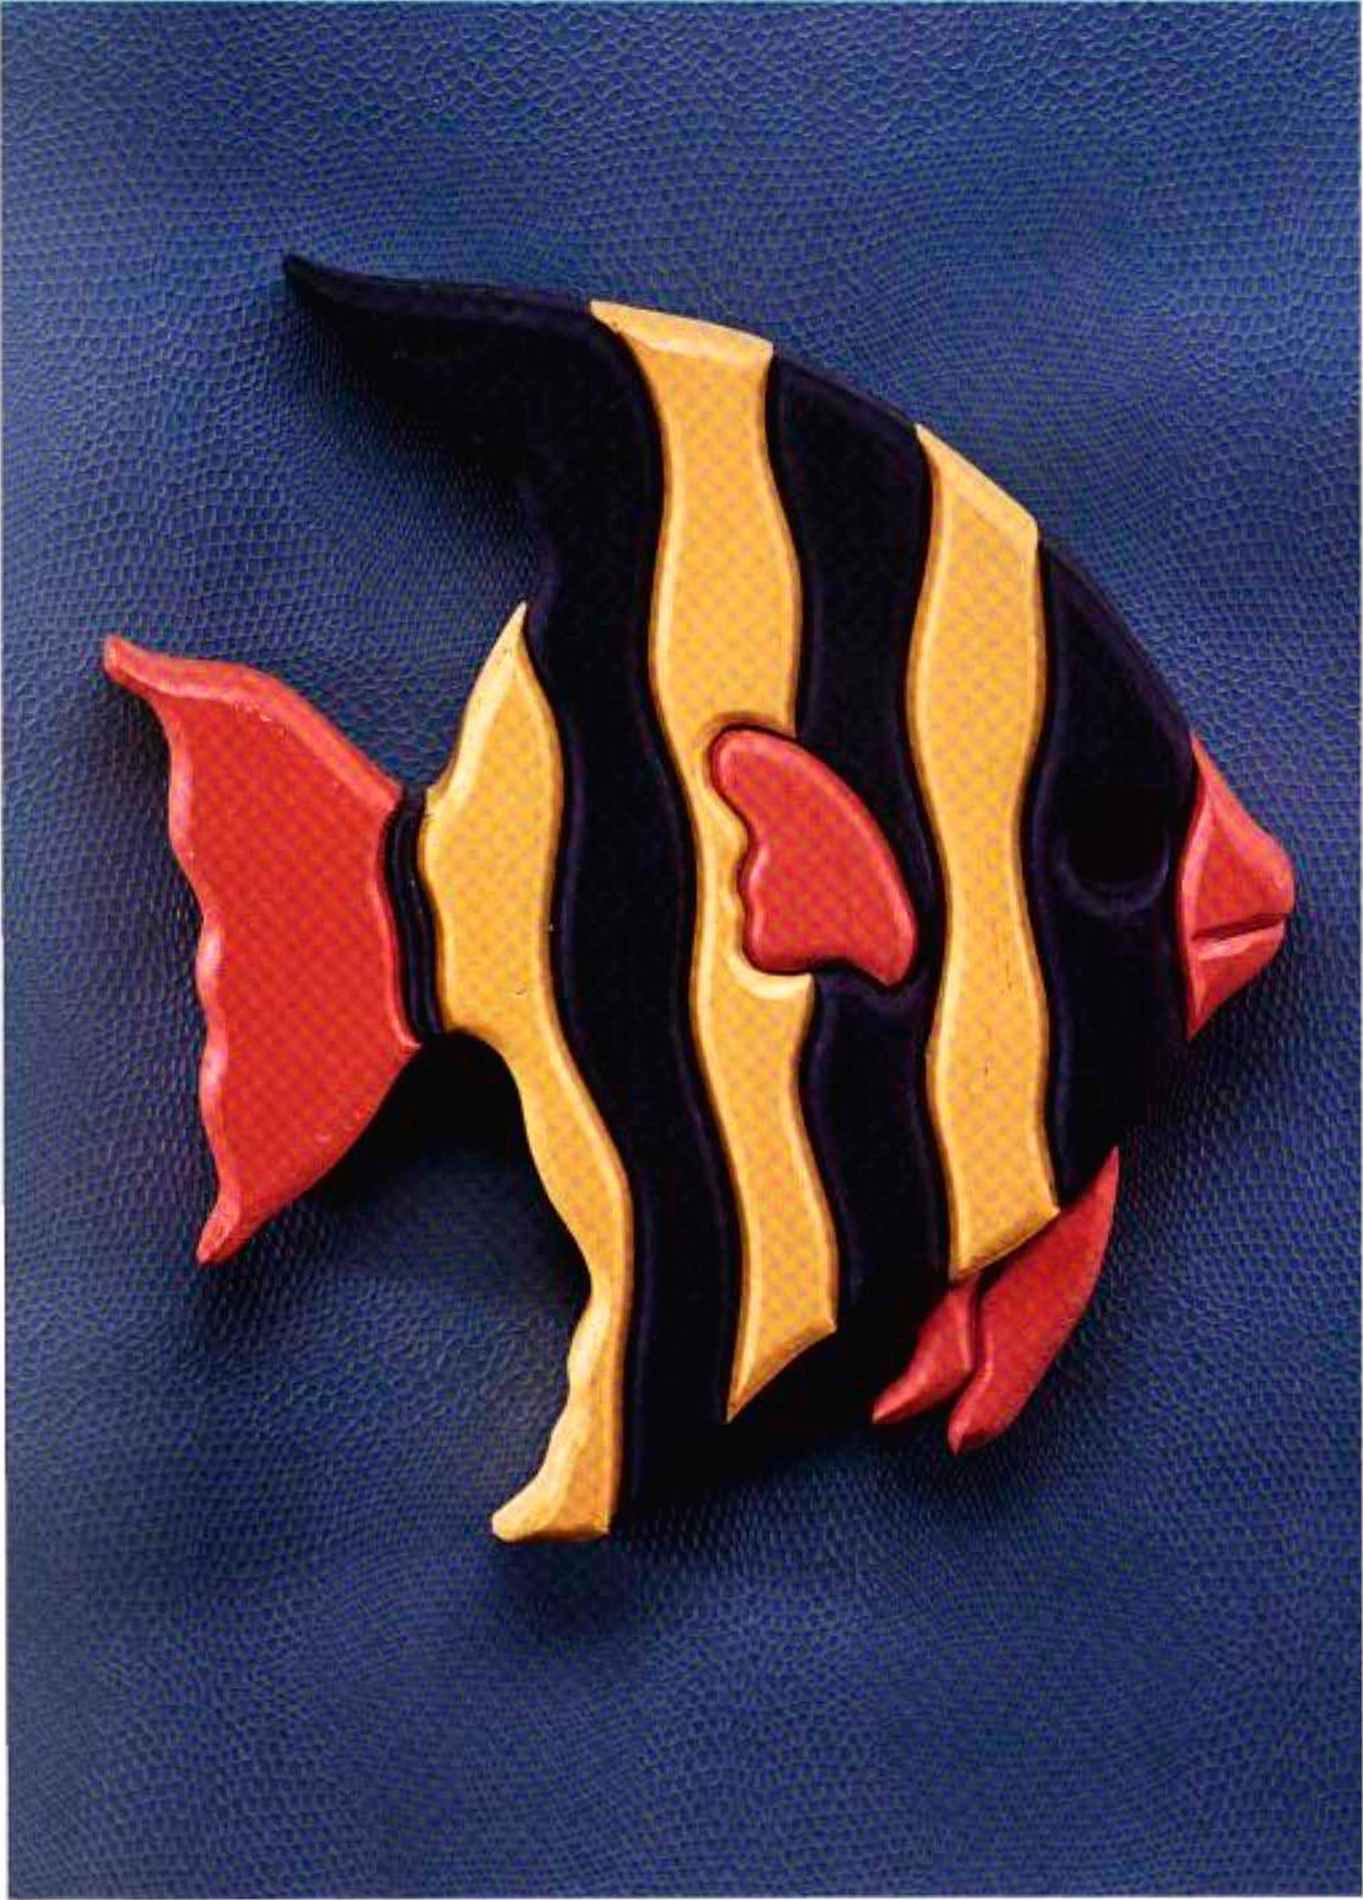 Striped Fish - Scroll saw - Woodworking Archive